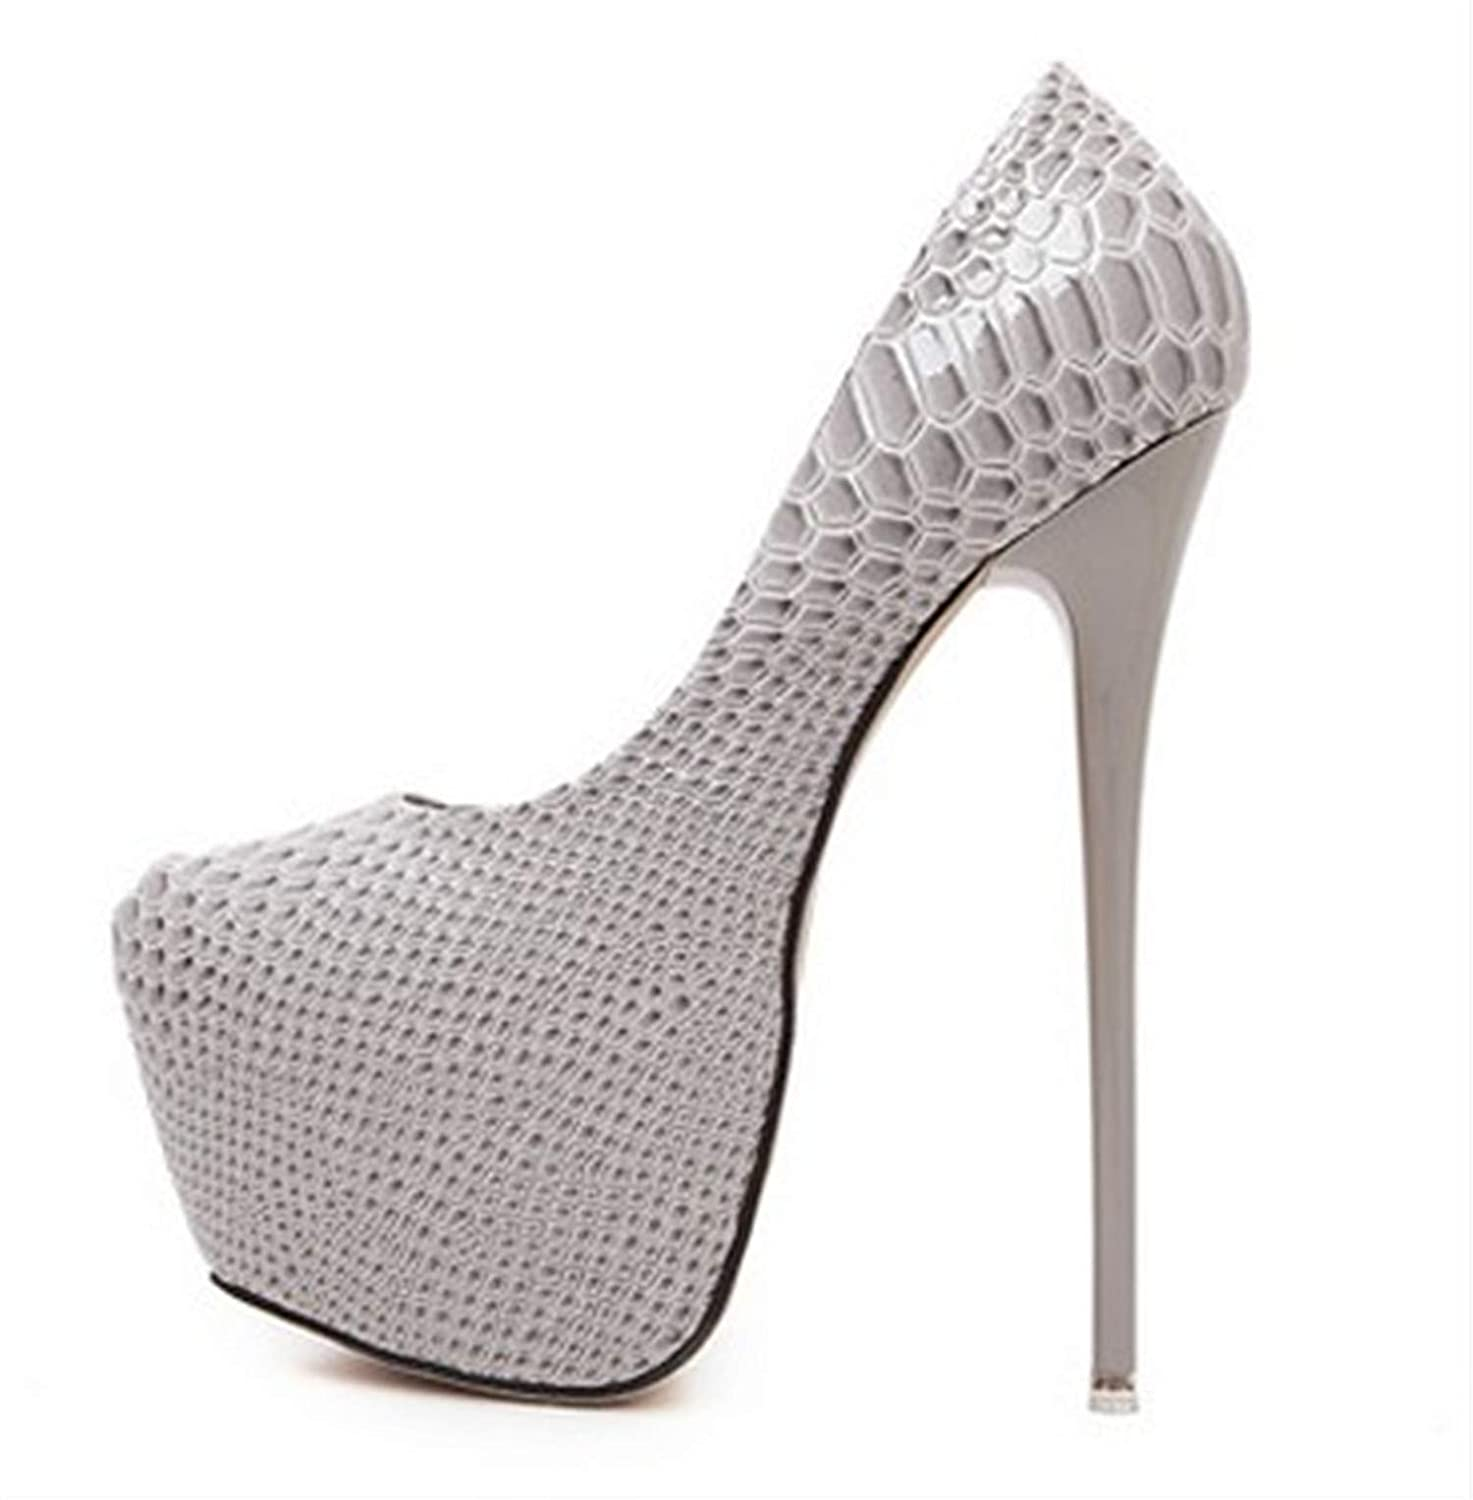 Men's/Women's Rngtaqubeic New Snakeskin Pumps 16 high cm high 16 Club high Heels Sexy high-Heeled Shoes Big Size 40 Beautiful design Beautiful appearance Breathable shoes NW8626 b2a538